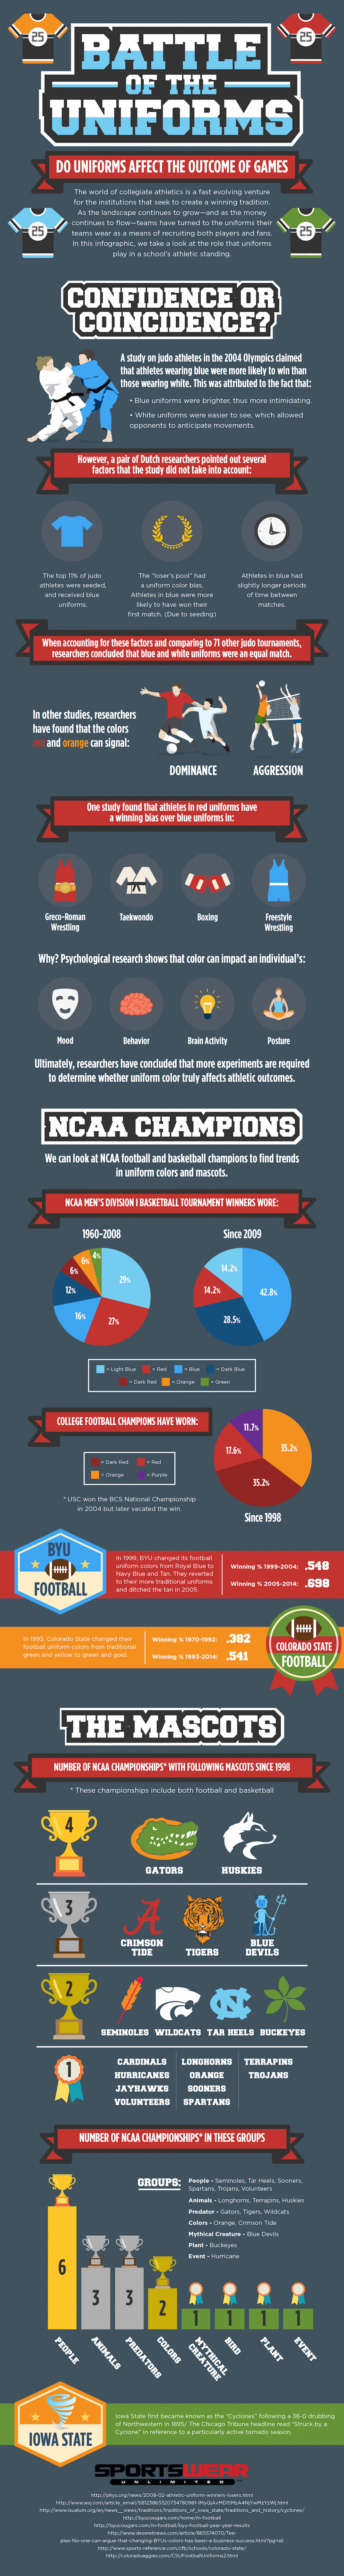 Battle Of The Uniforms - Do Uniforms Affect The Outcome Of Games? Infographic